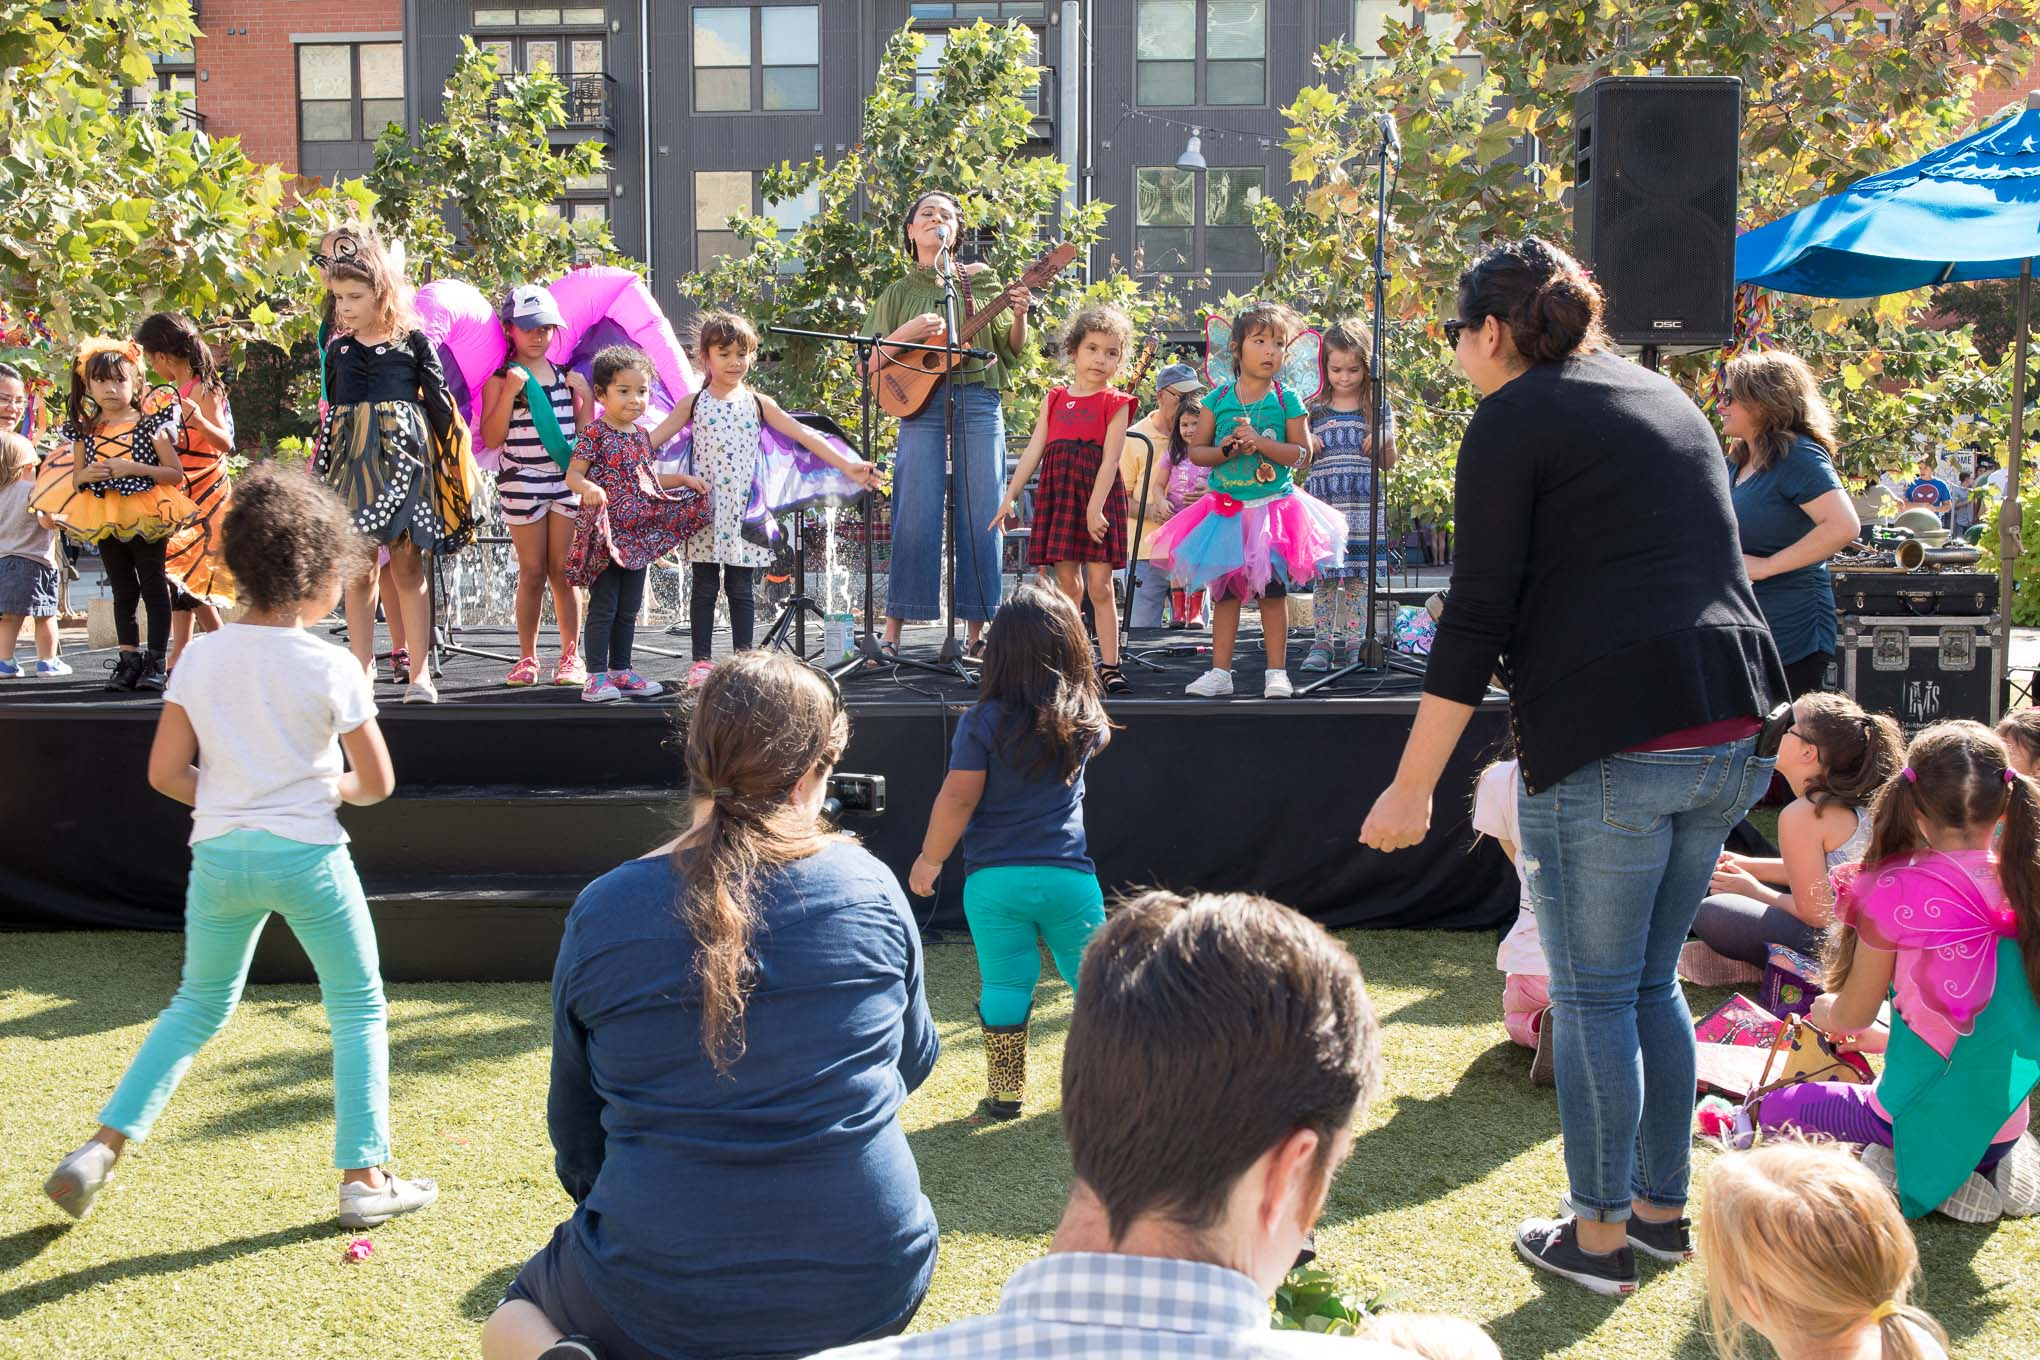 Azul Barrientos performs as she is accompanied on stage by children dressed as butterflies.